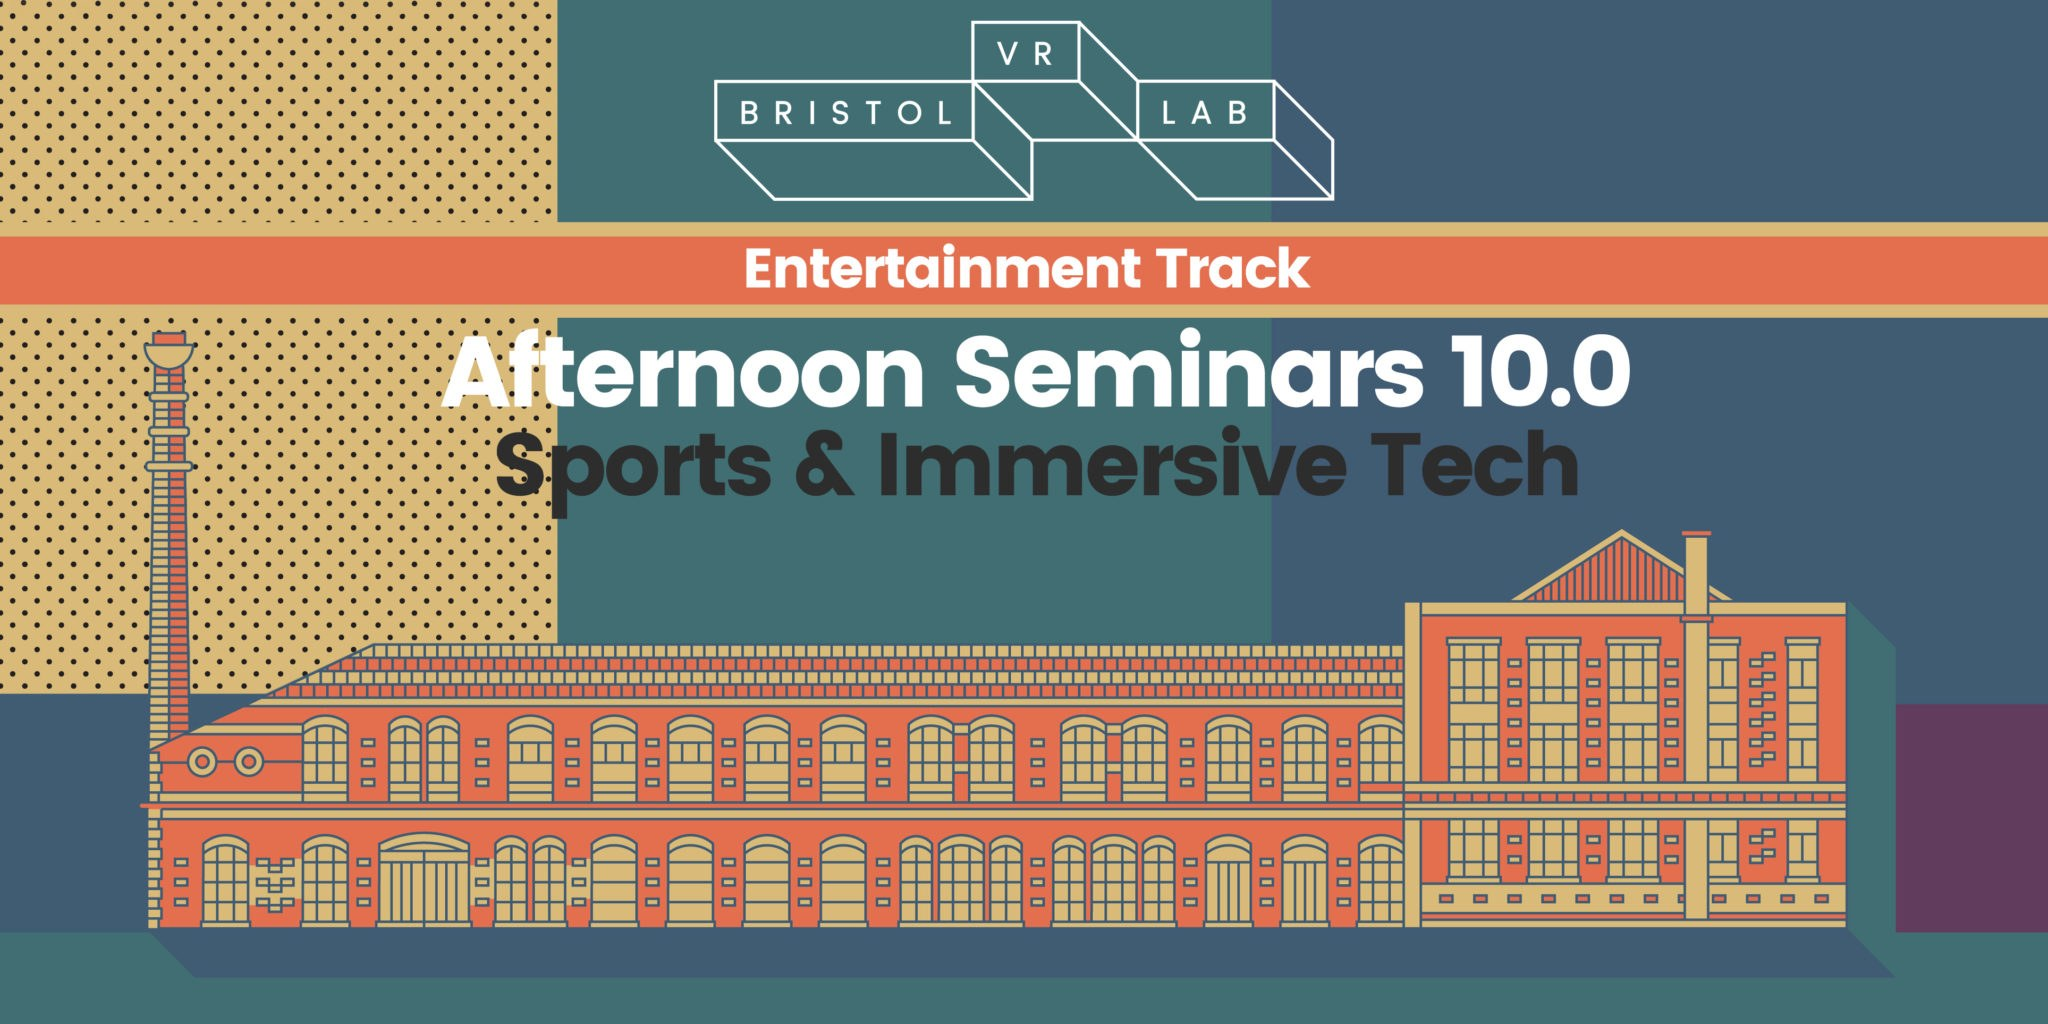 BVRL Afternoon Seminars 10.0 – Sports & Immersive Tech